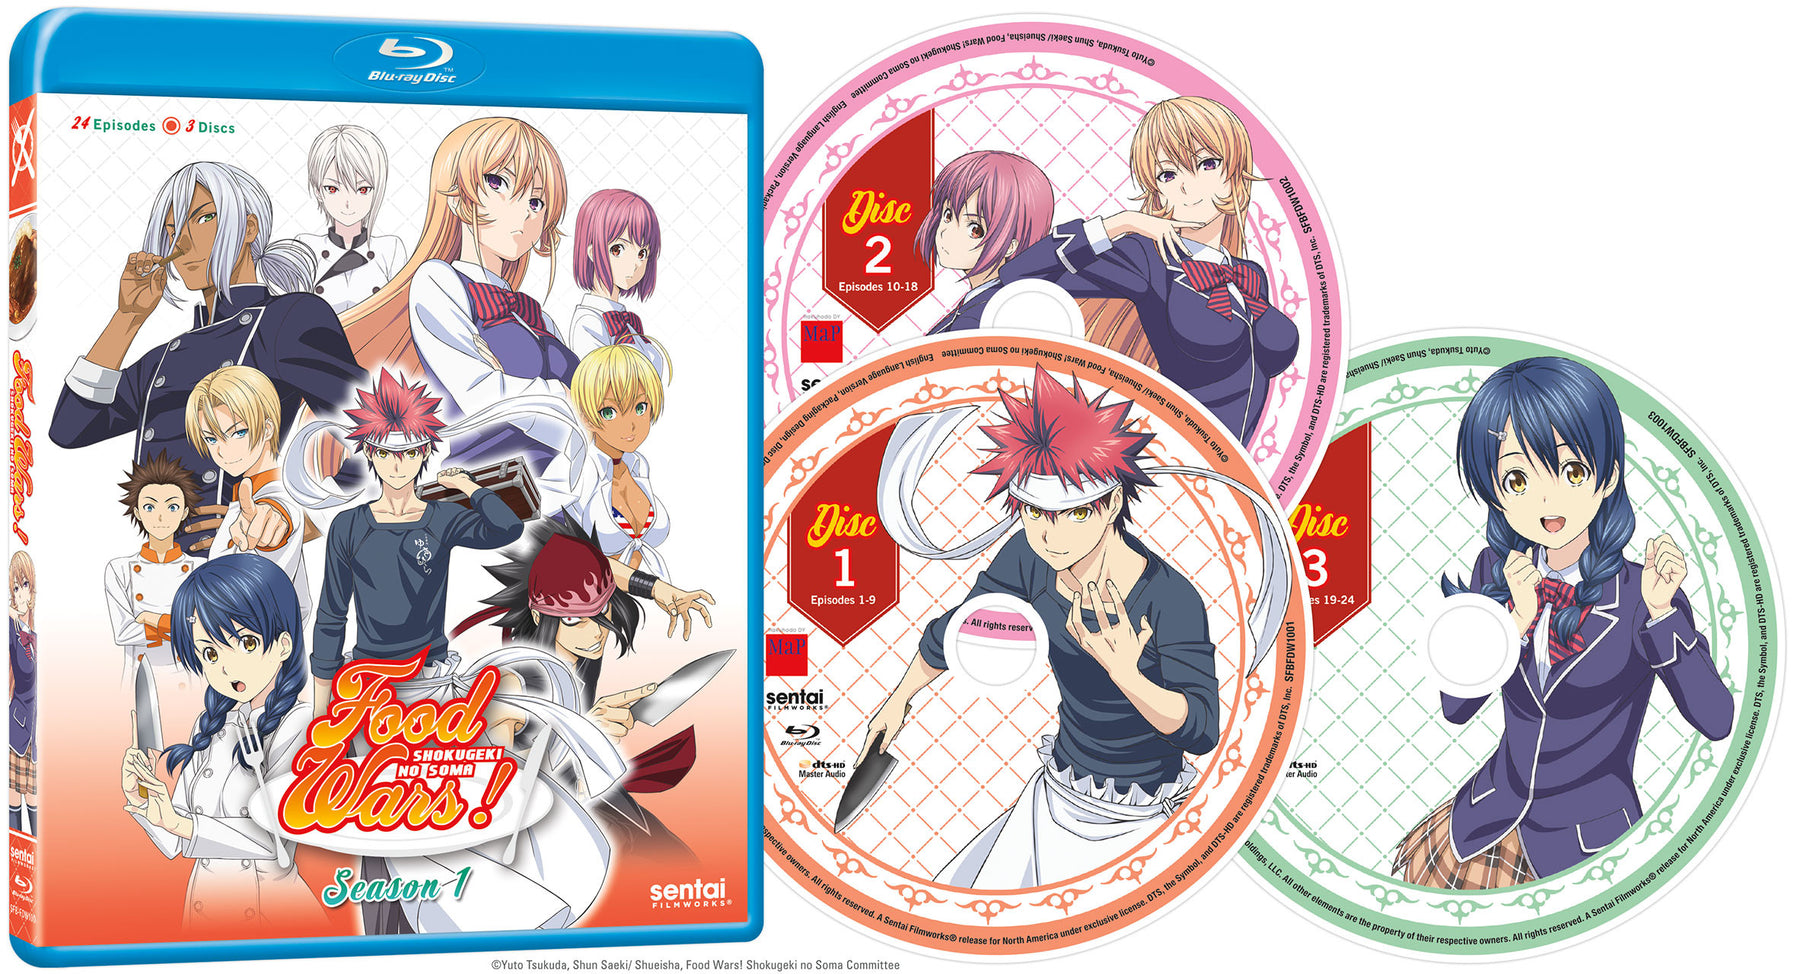 Food Wars! Complete Collection Blu-ray Disc Spread